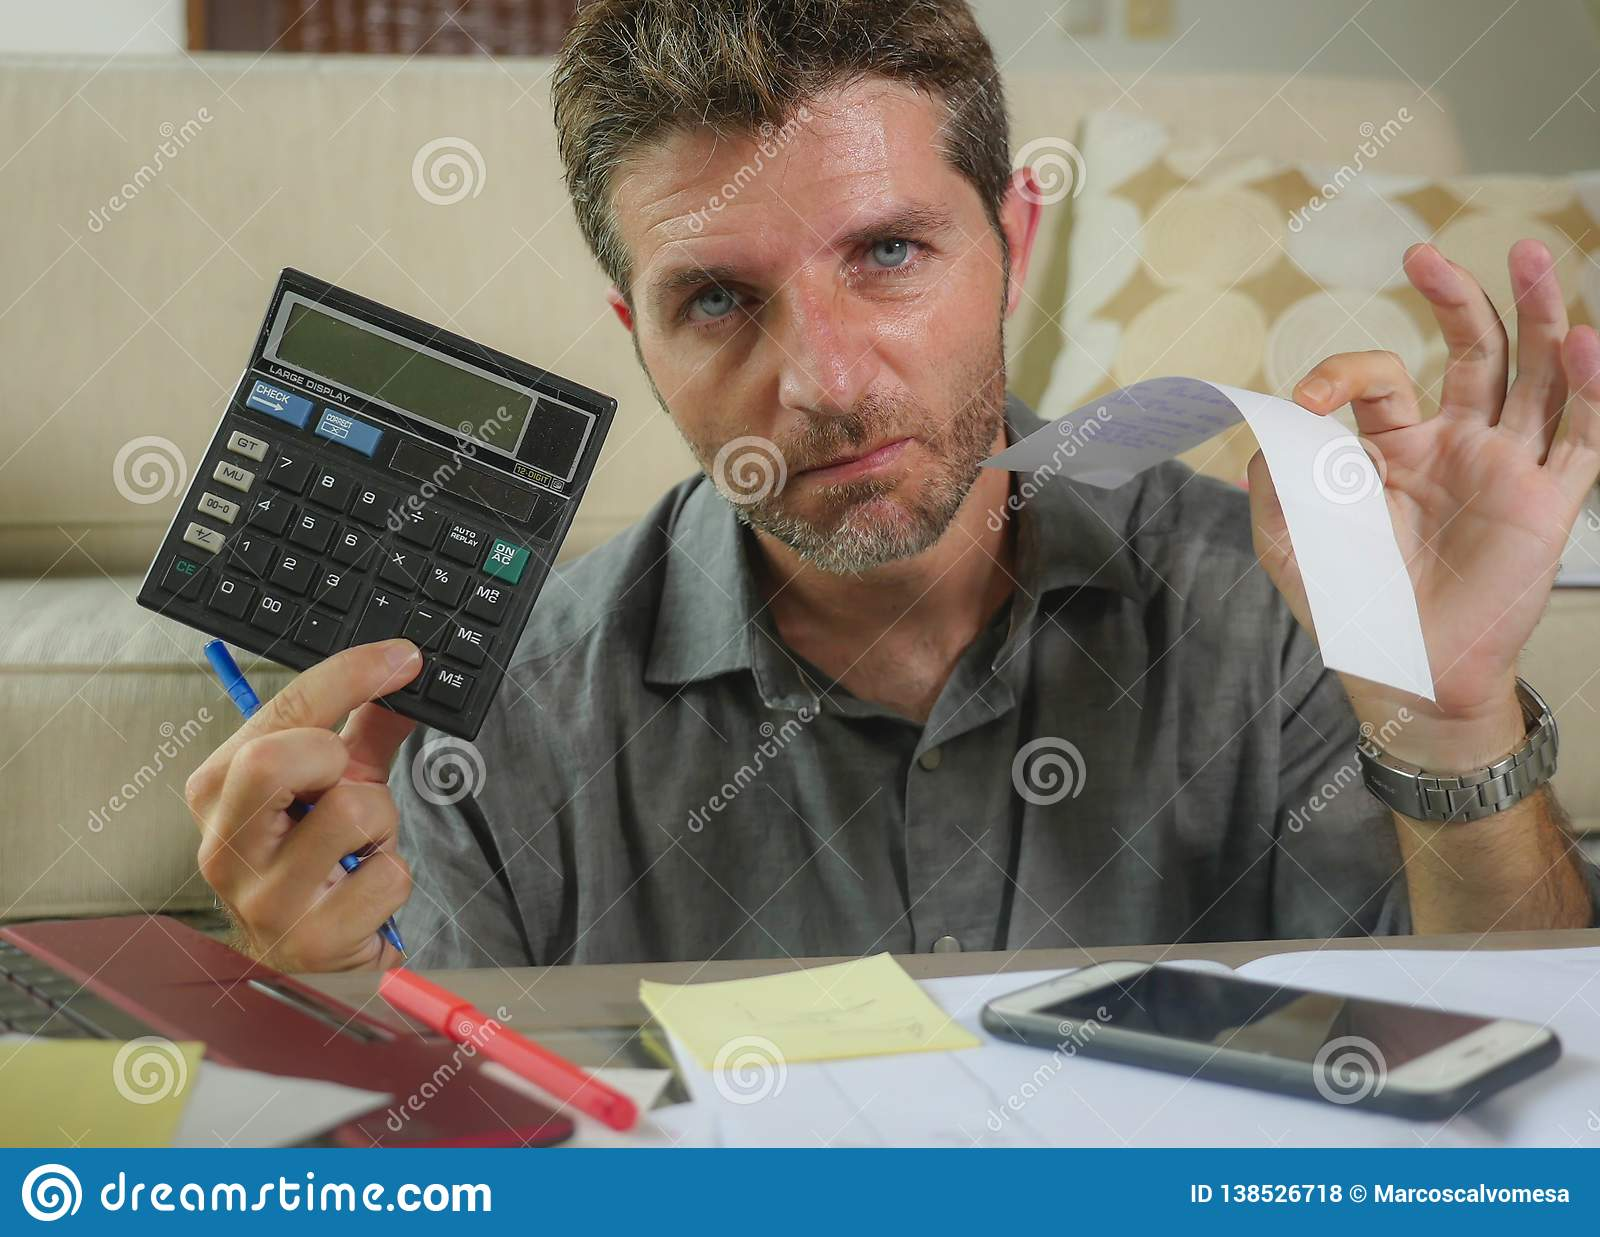 Young stressed and worried man at home living room using calculator and laptop doing domestic accounting paperwork feeling